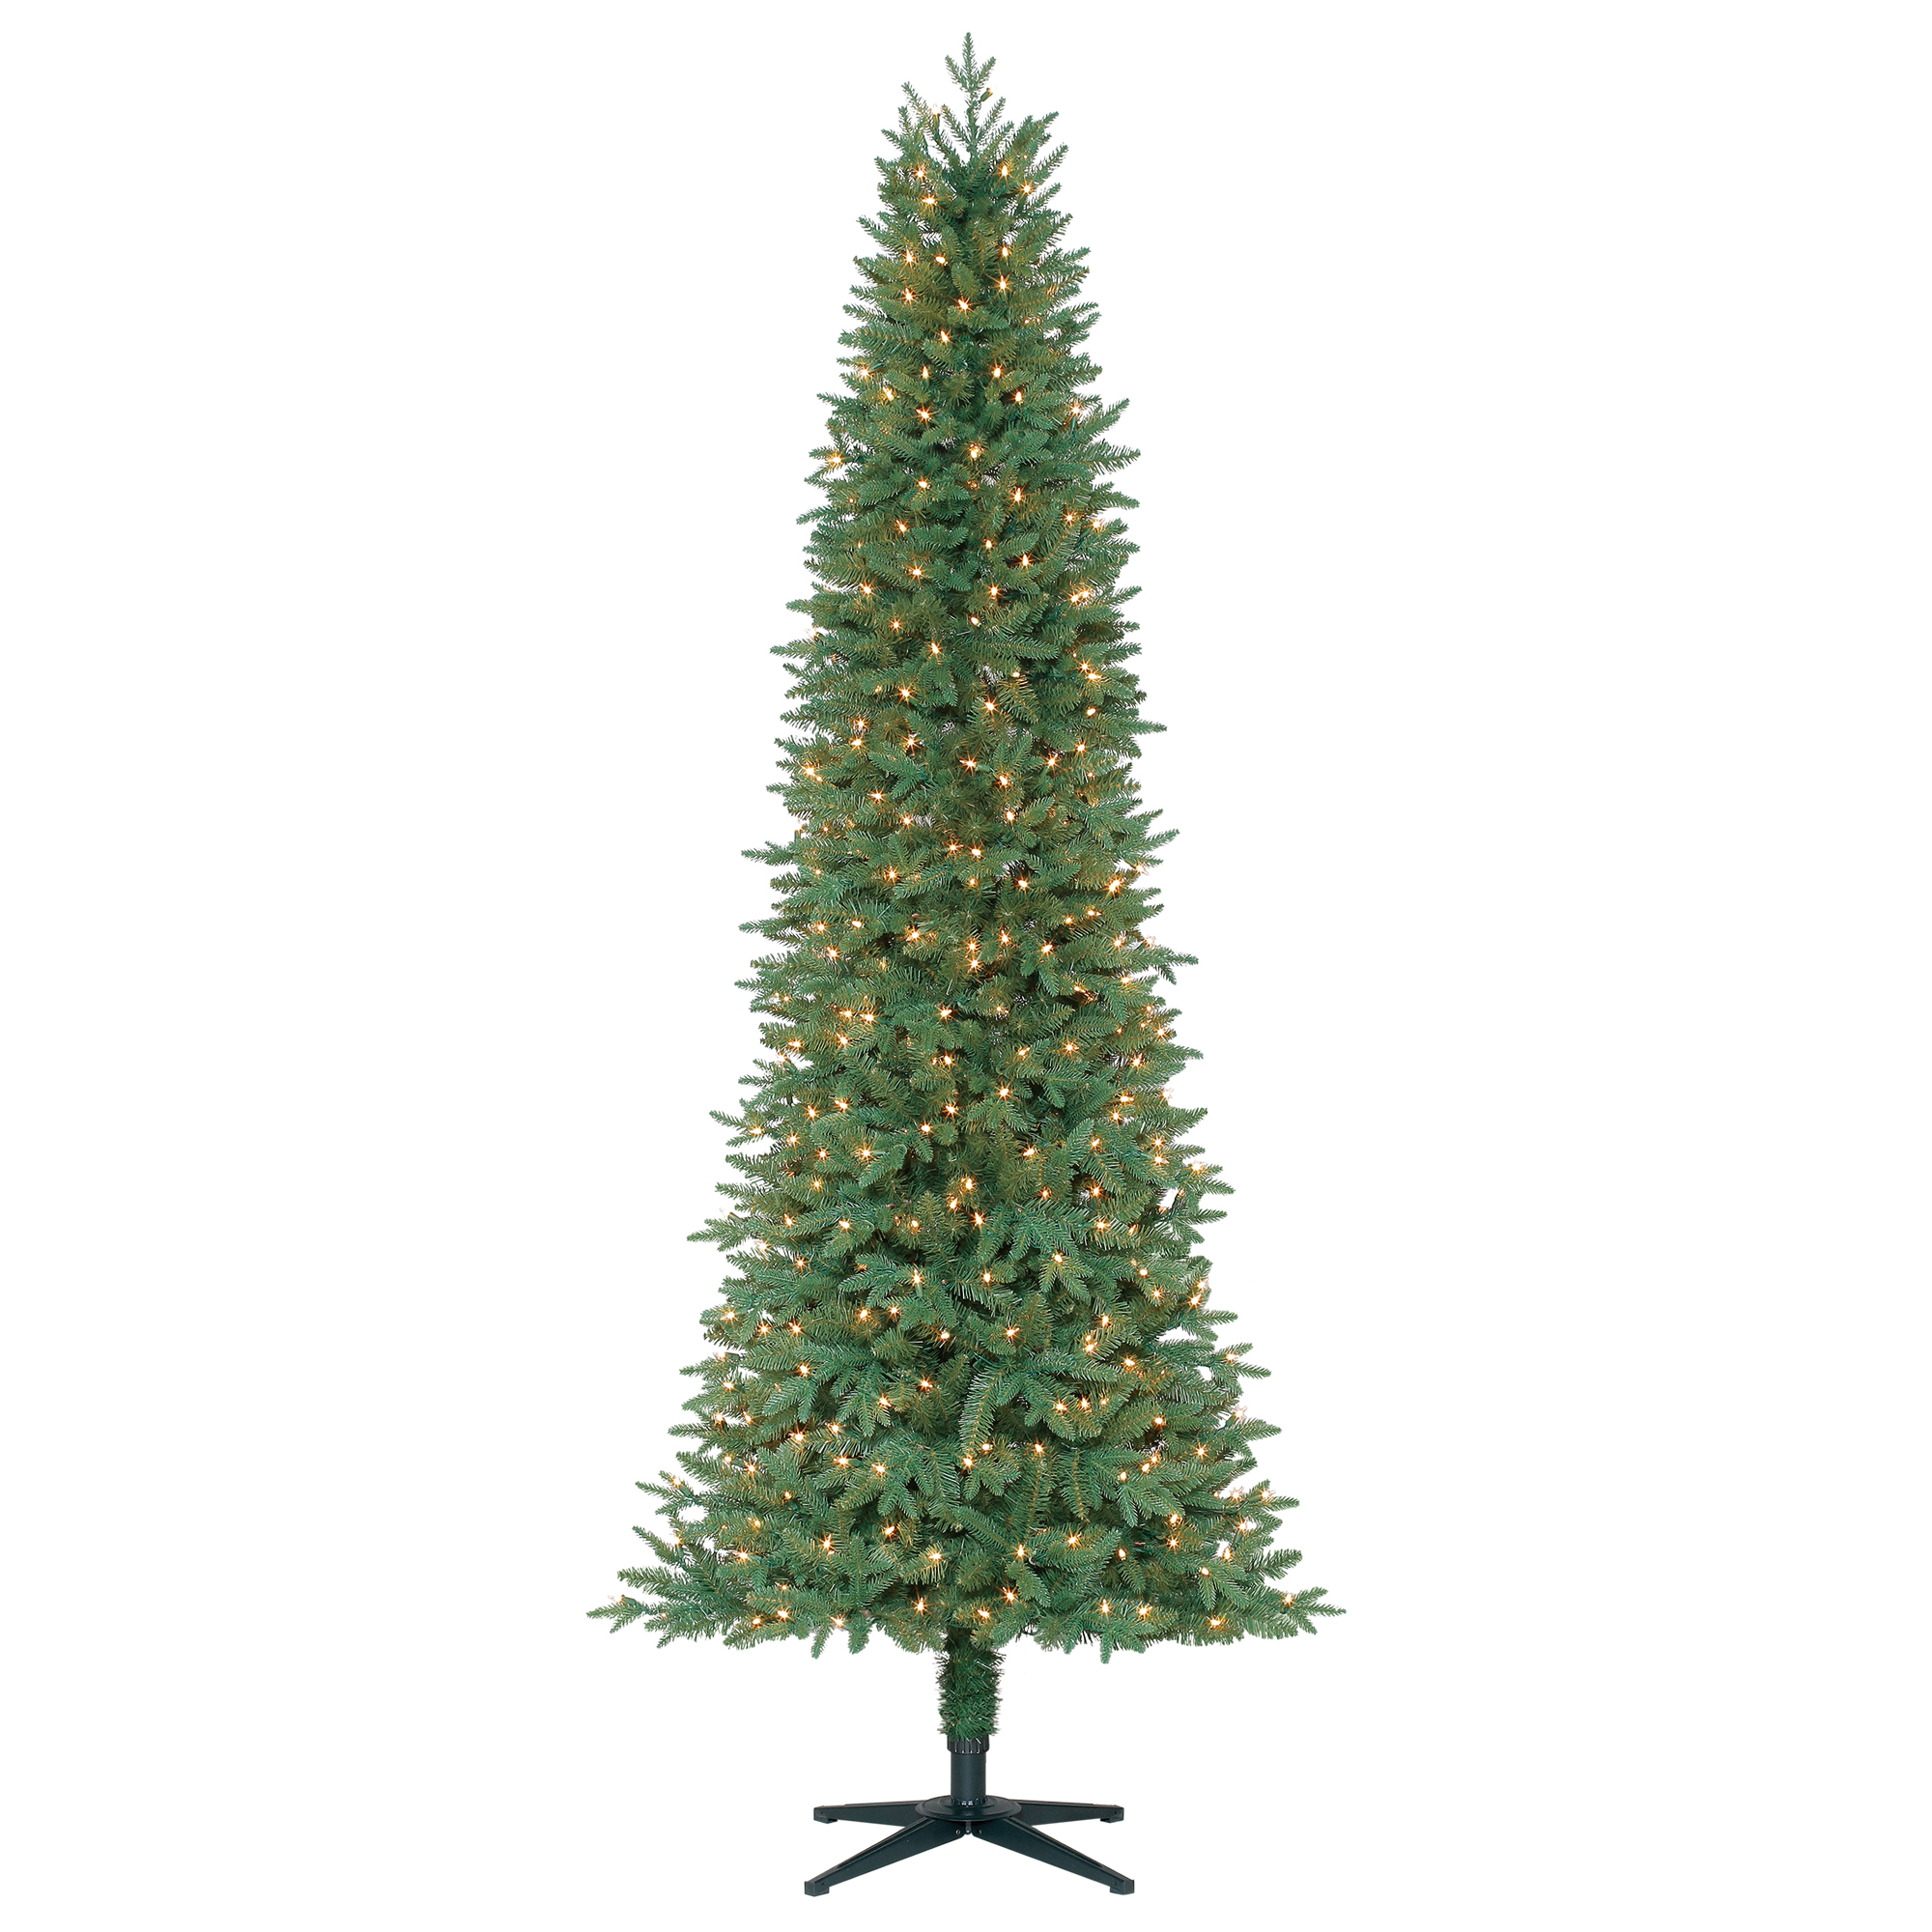 Holiday Time 7.5 ft Pre-Lit Sanford Fir Artificial Christmas Tree with 450 Clear-Lights - Green